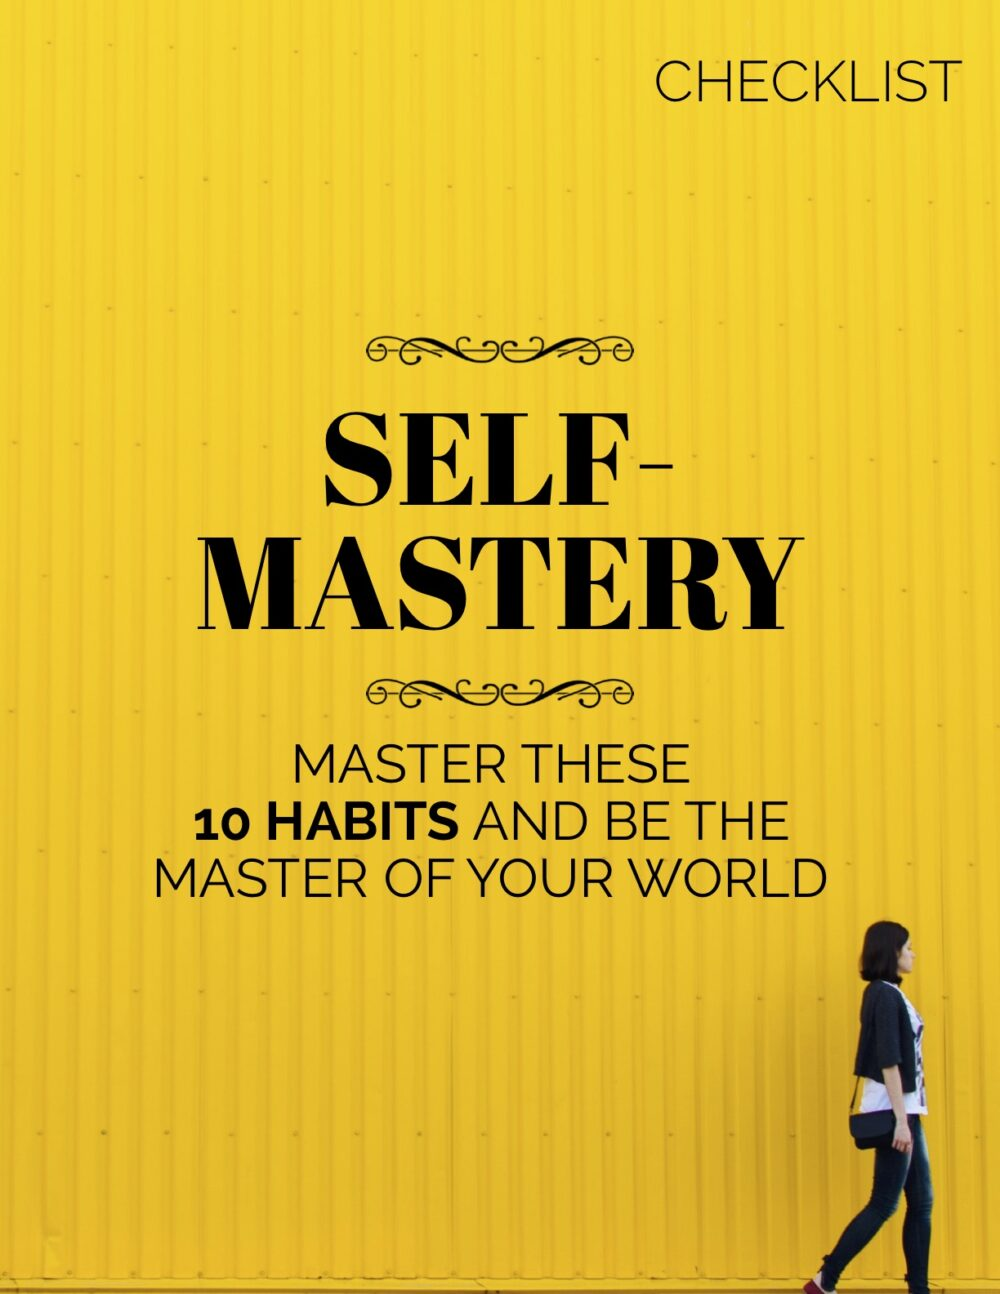 Self-Mastery - Master These 10 Habits and Be The Master of Your World - Checklist